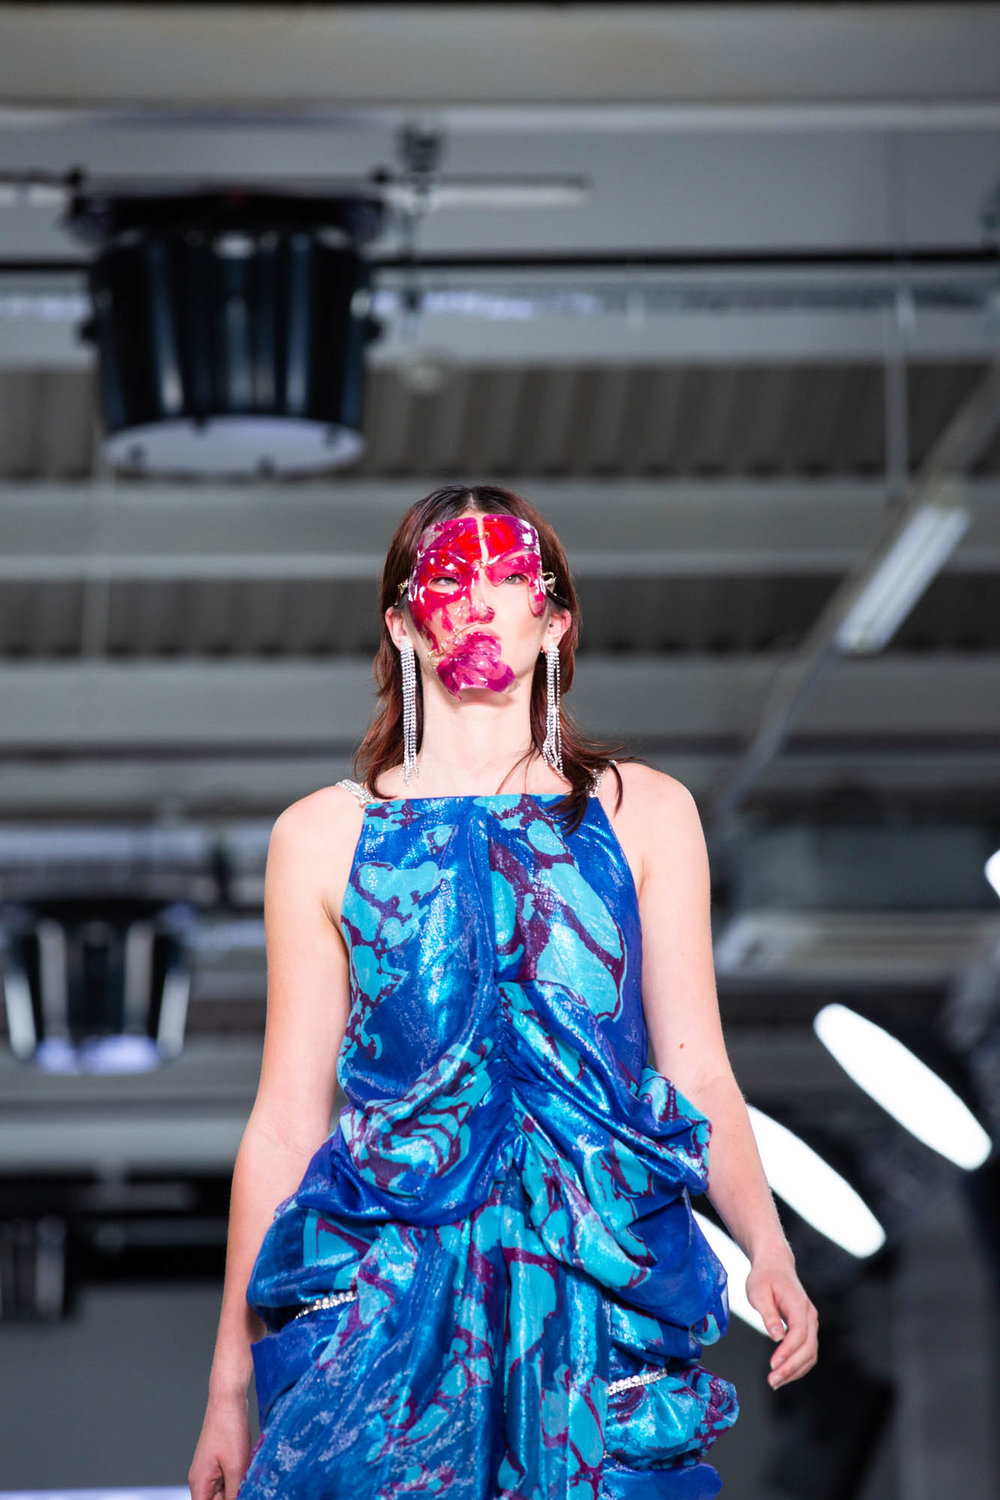 University of East London Catwalk 030618 Imageby Becky-3.jpg